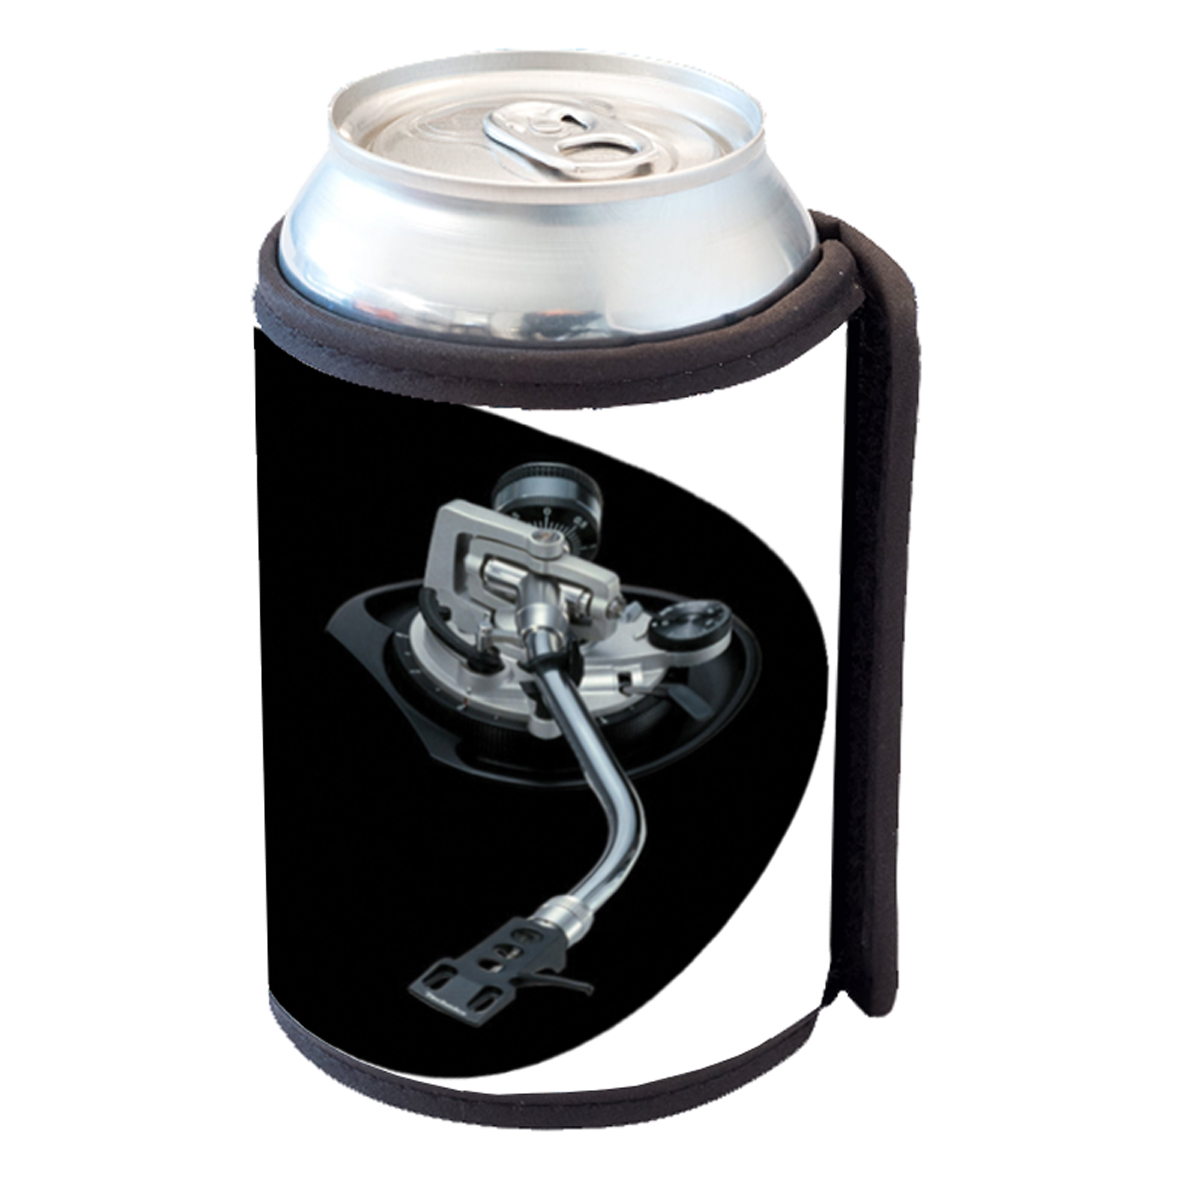 KuzmarK Insulated Drink Can Cooler Hugger - Turntable Control Arm